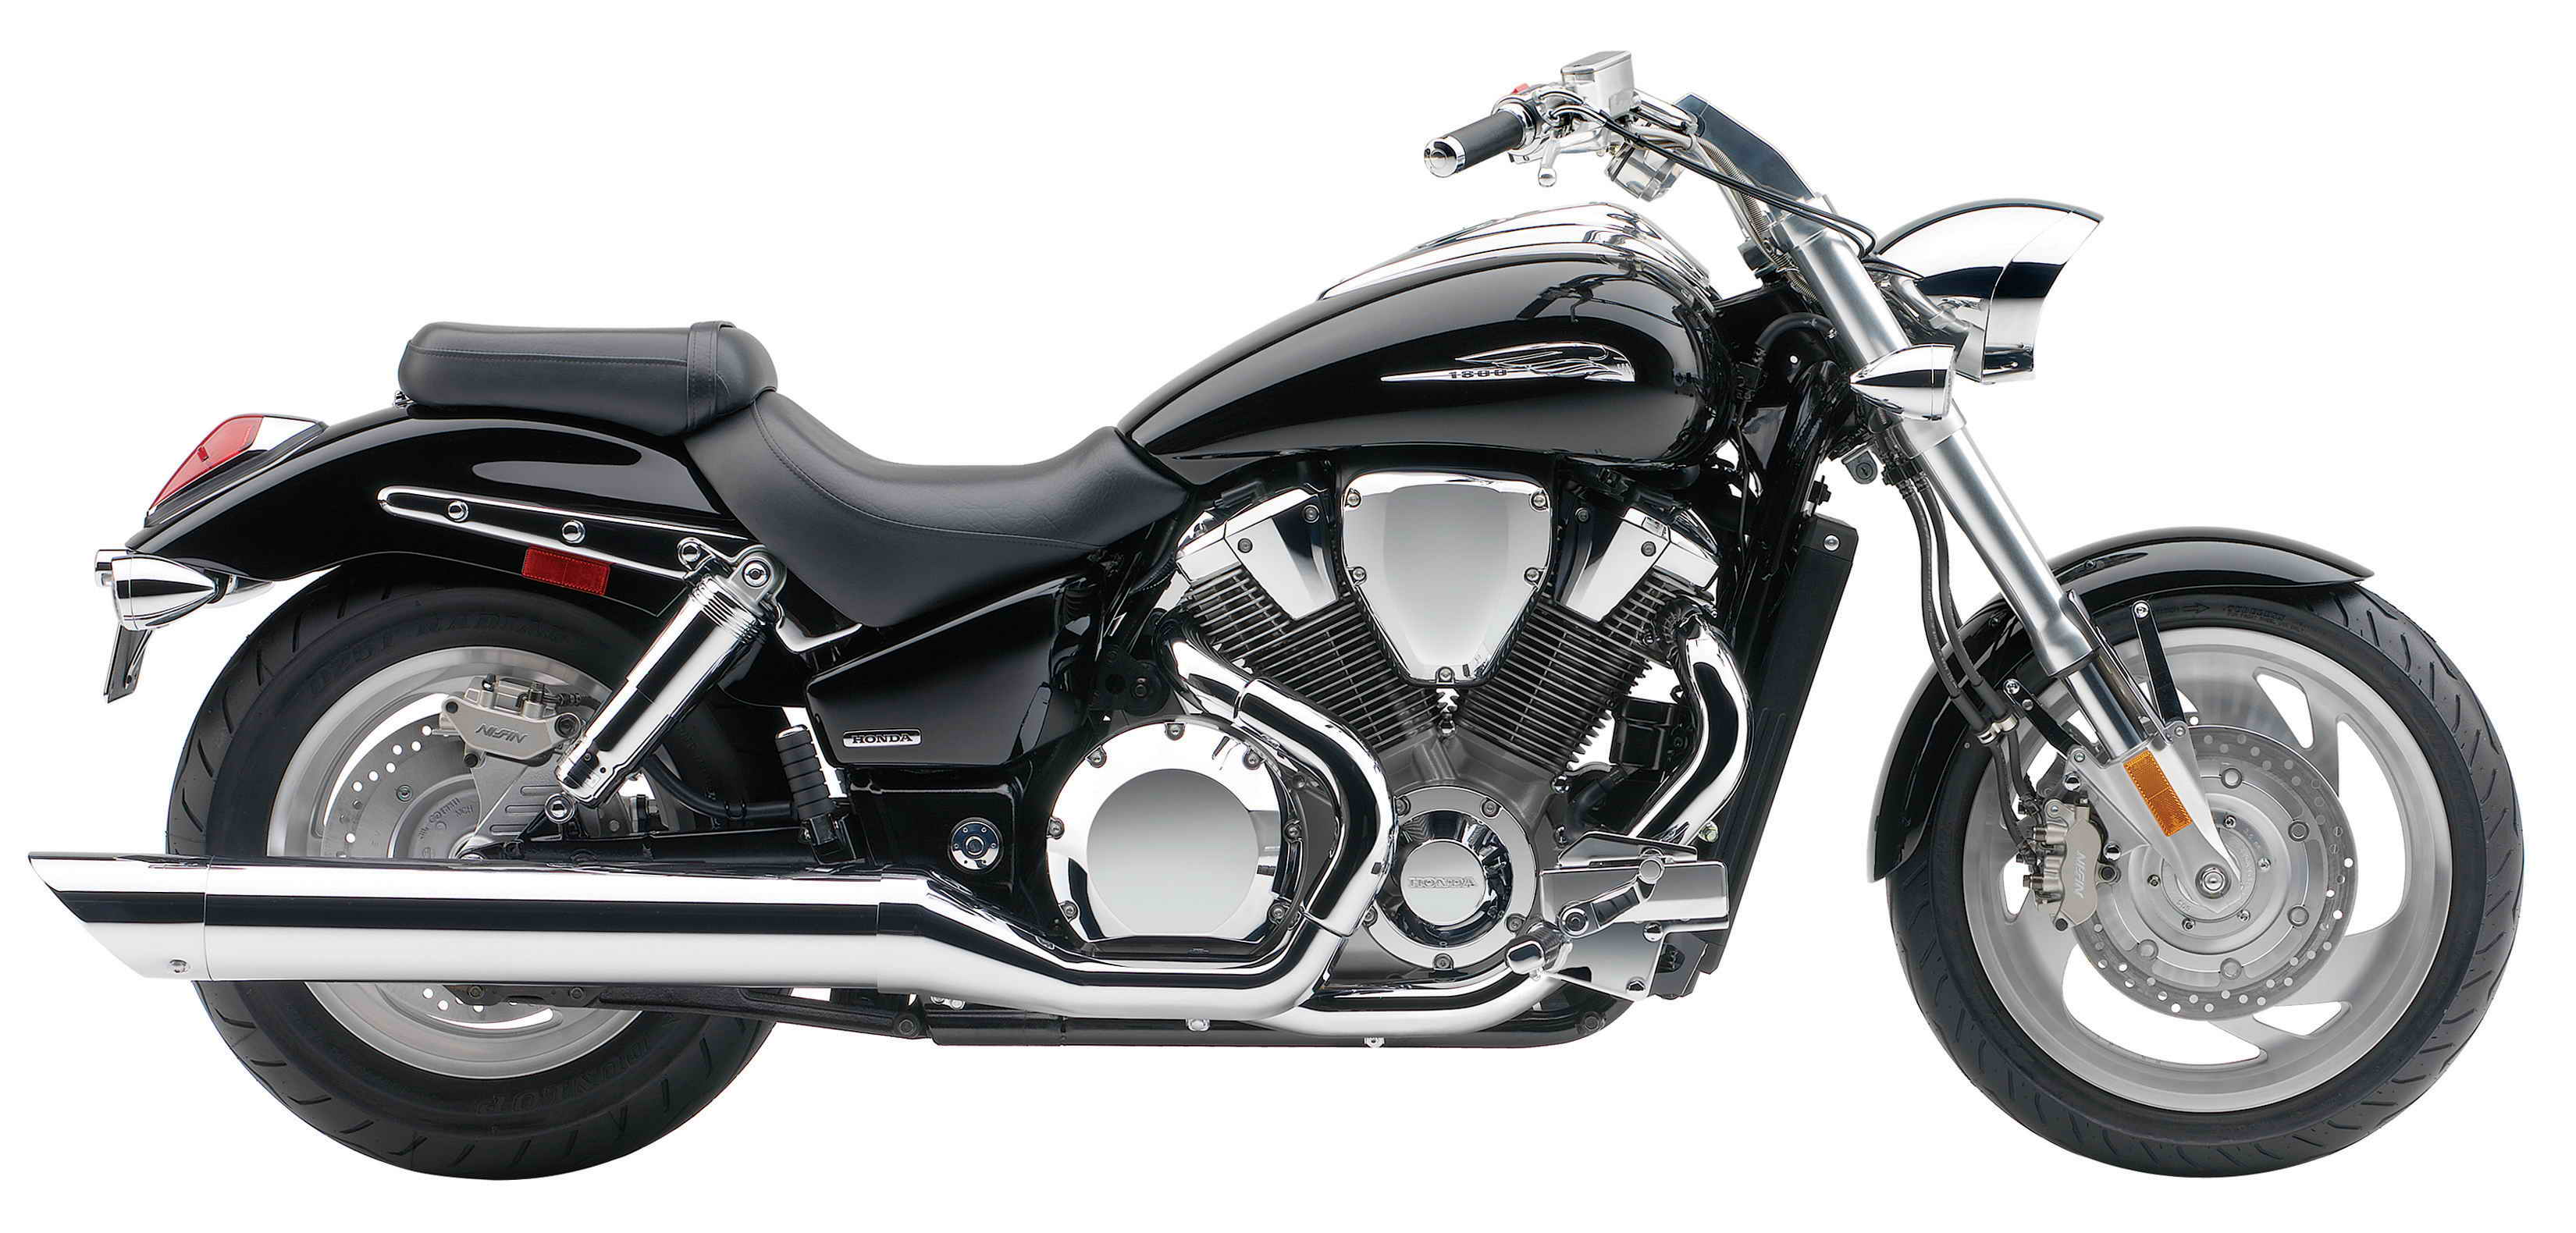 2007 Honda VTX1800C | Top Speed. »